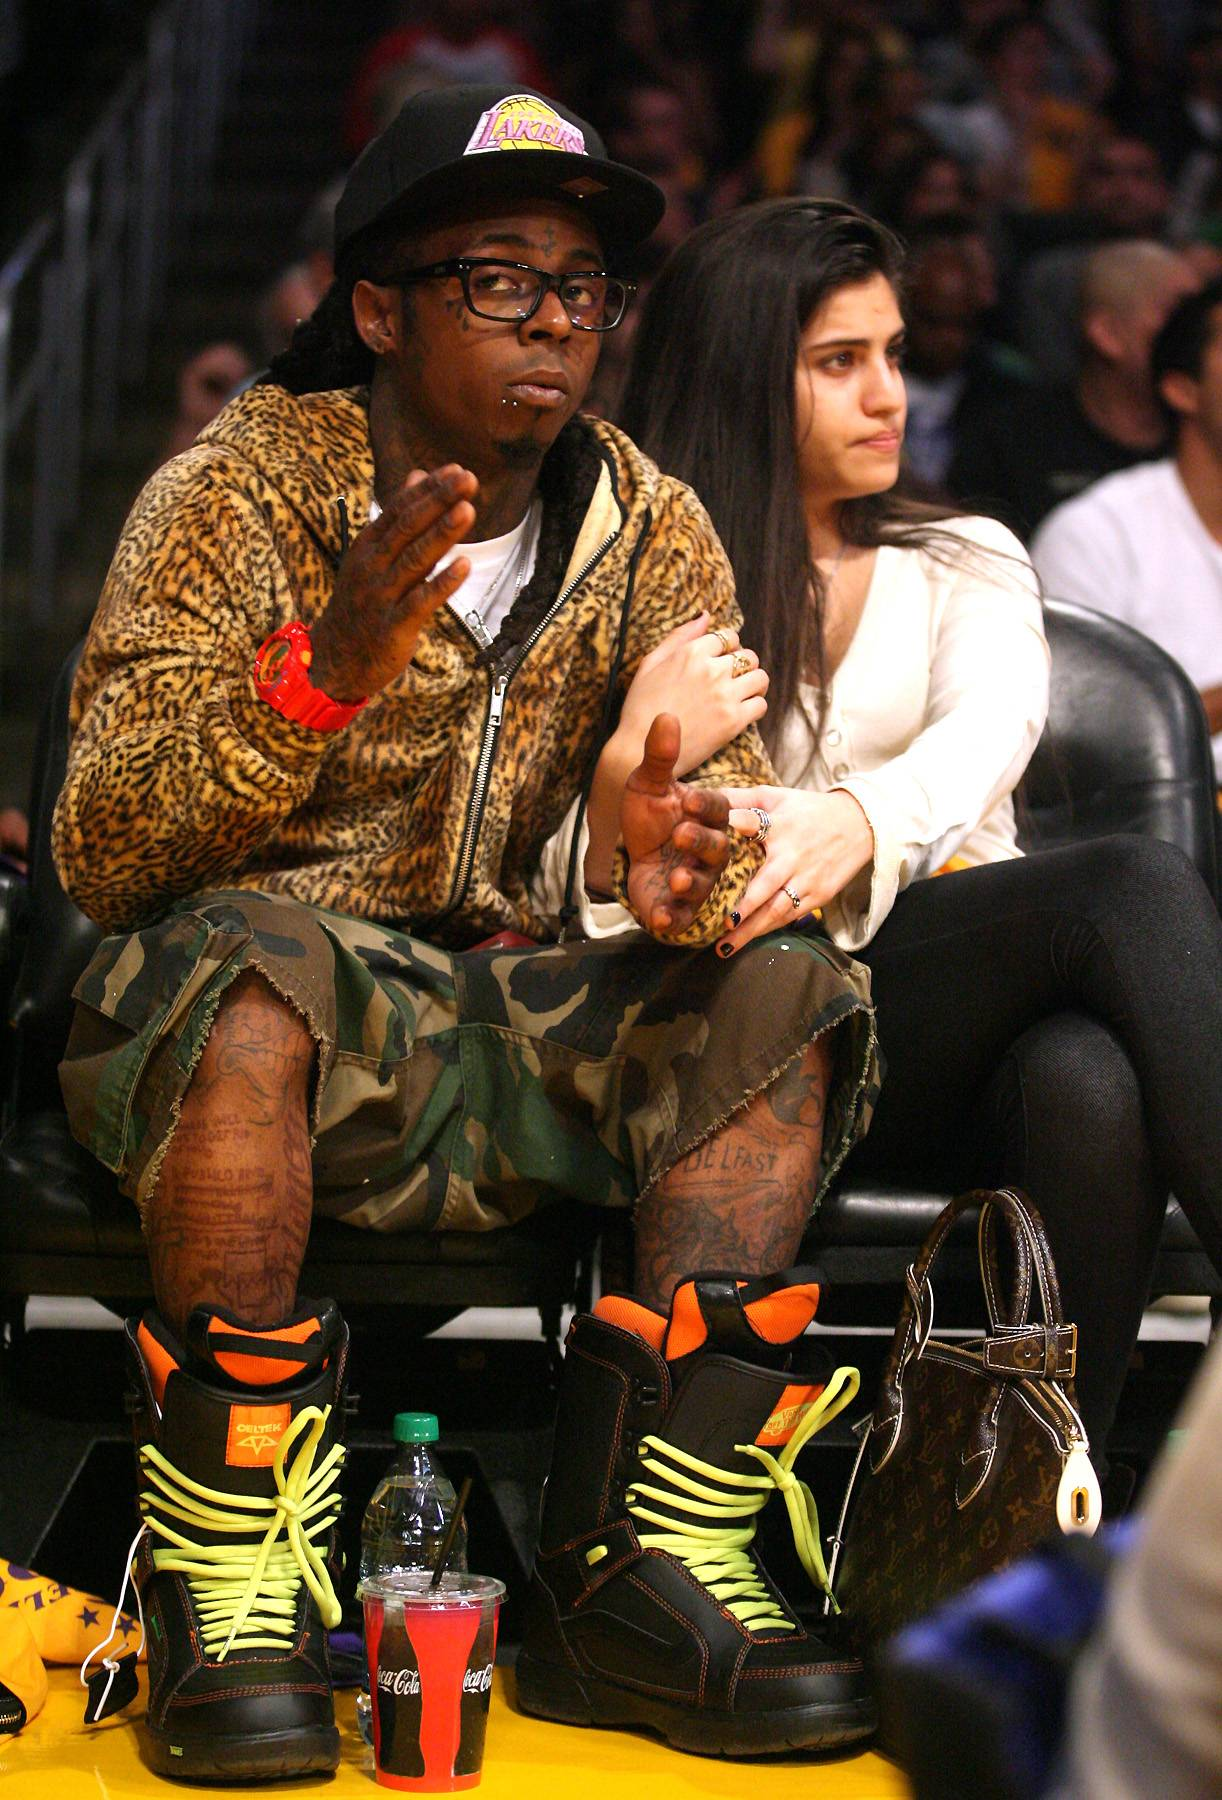 Lil Wayne - The 68th NBA season jumped off Tuesday (Oct. 29) with the defending champs, Miami Heat, continuing their winning ways by beating the Derrick Rose and Chicago Bulls. Lil Wayne is certainly not a Heat fan, but he like many are happy to see the NBA kickoff another season. Weezy, a die hard Los Angeles Lakers fan, is just one of the many music stars who you might see pop up courtside this season. Meanwhile, click on to see who else likes to post up in jerseys, sit courtside and trash-talk on Twitter.(Photo: London Entertainment / Splash News)